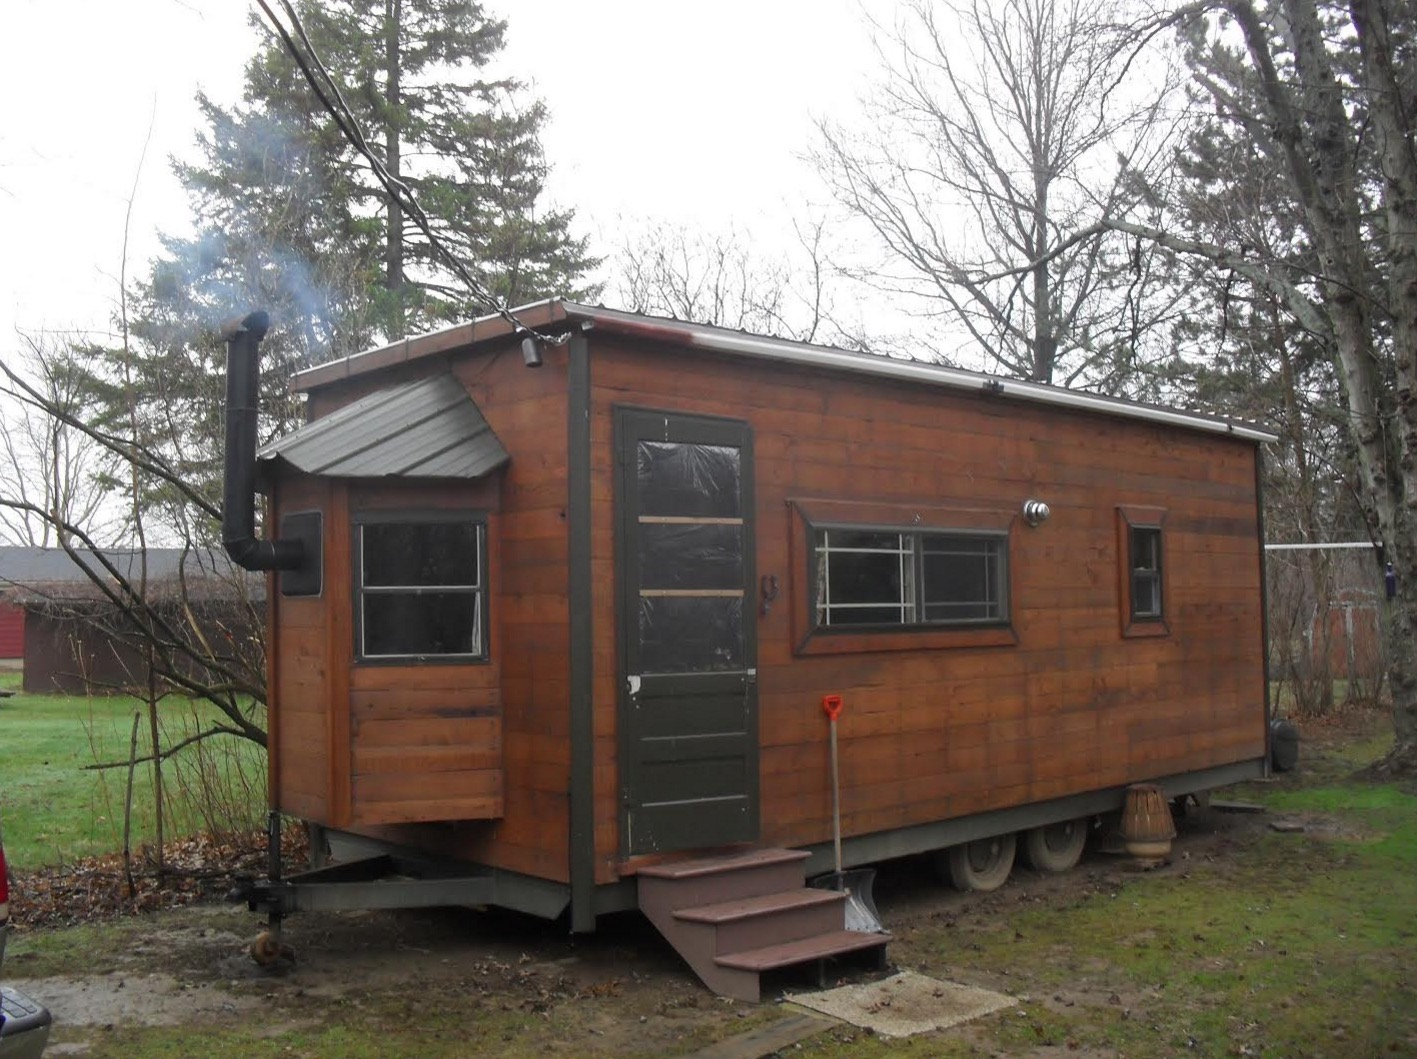 Design Tiny Houses On Wheels kerrys 12k tiny house on wheels for sale